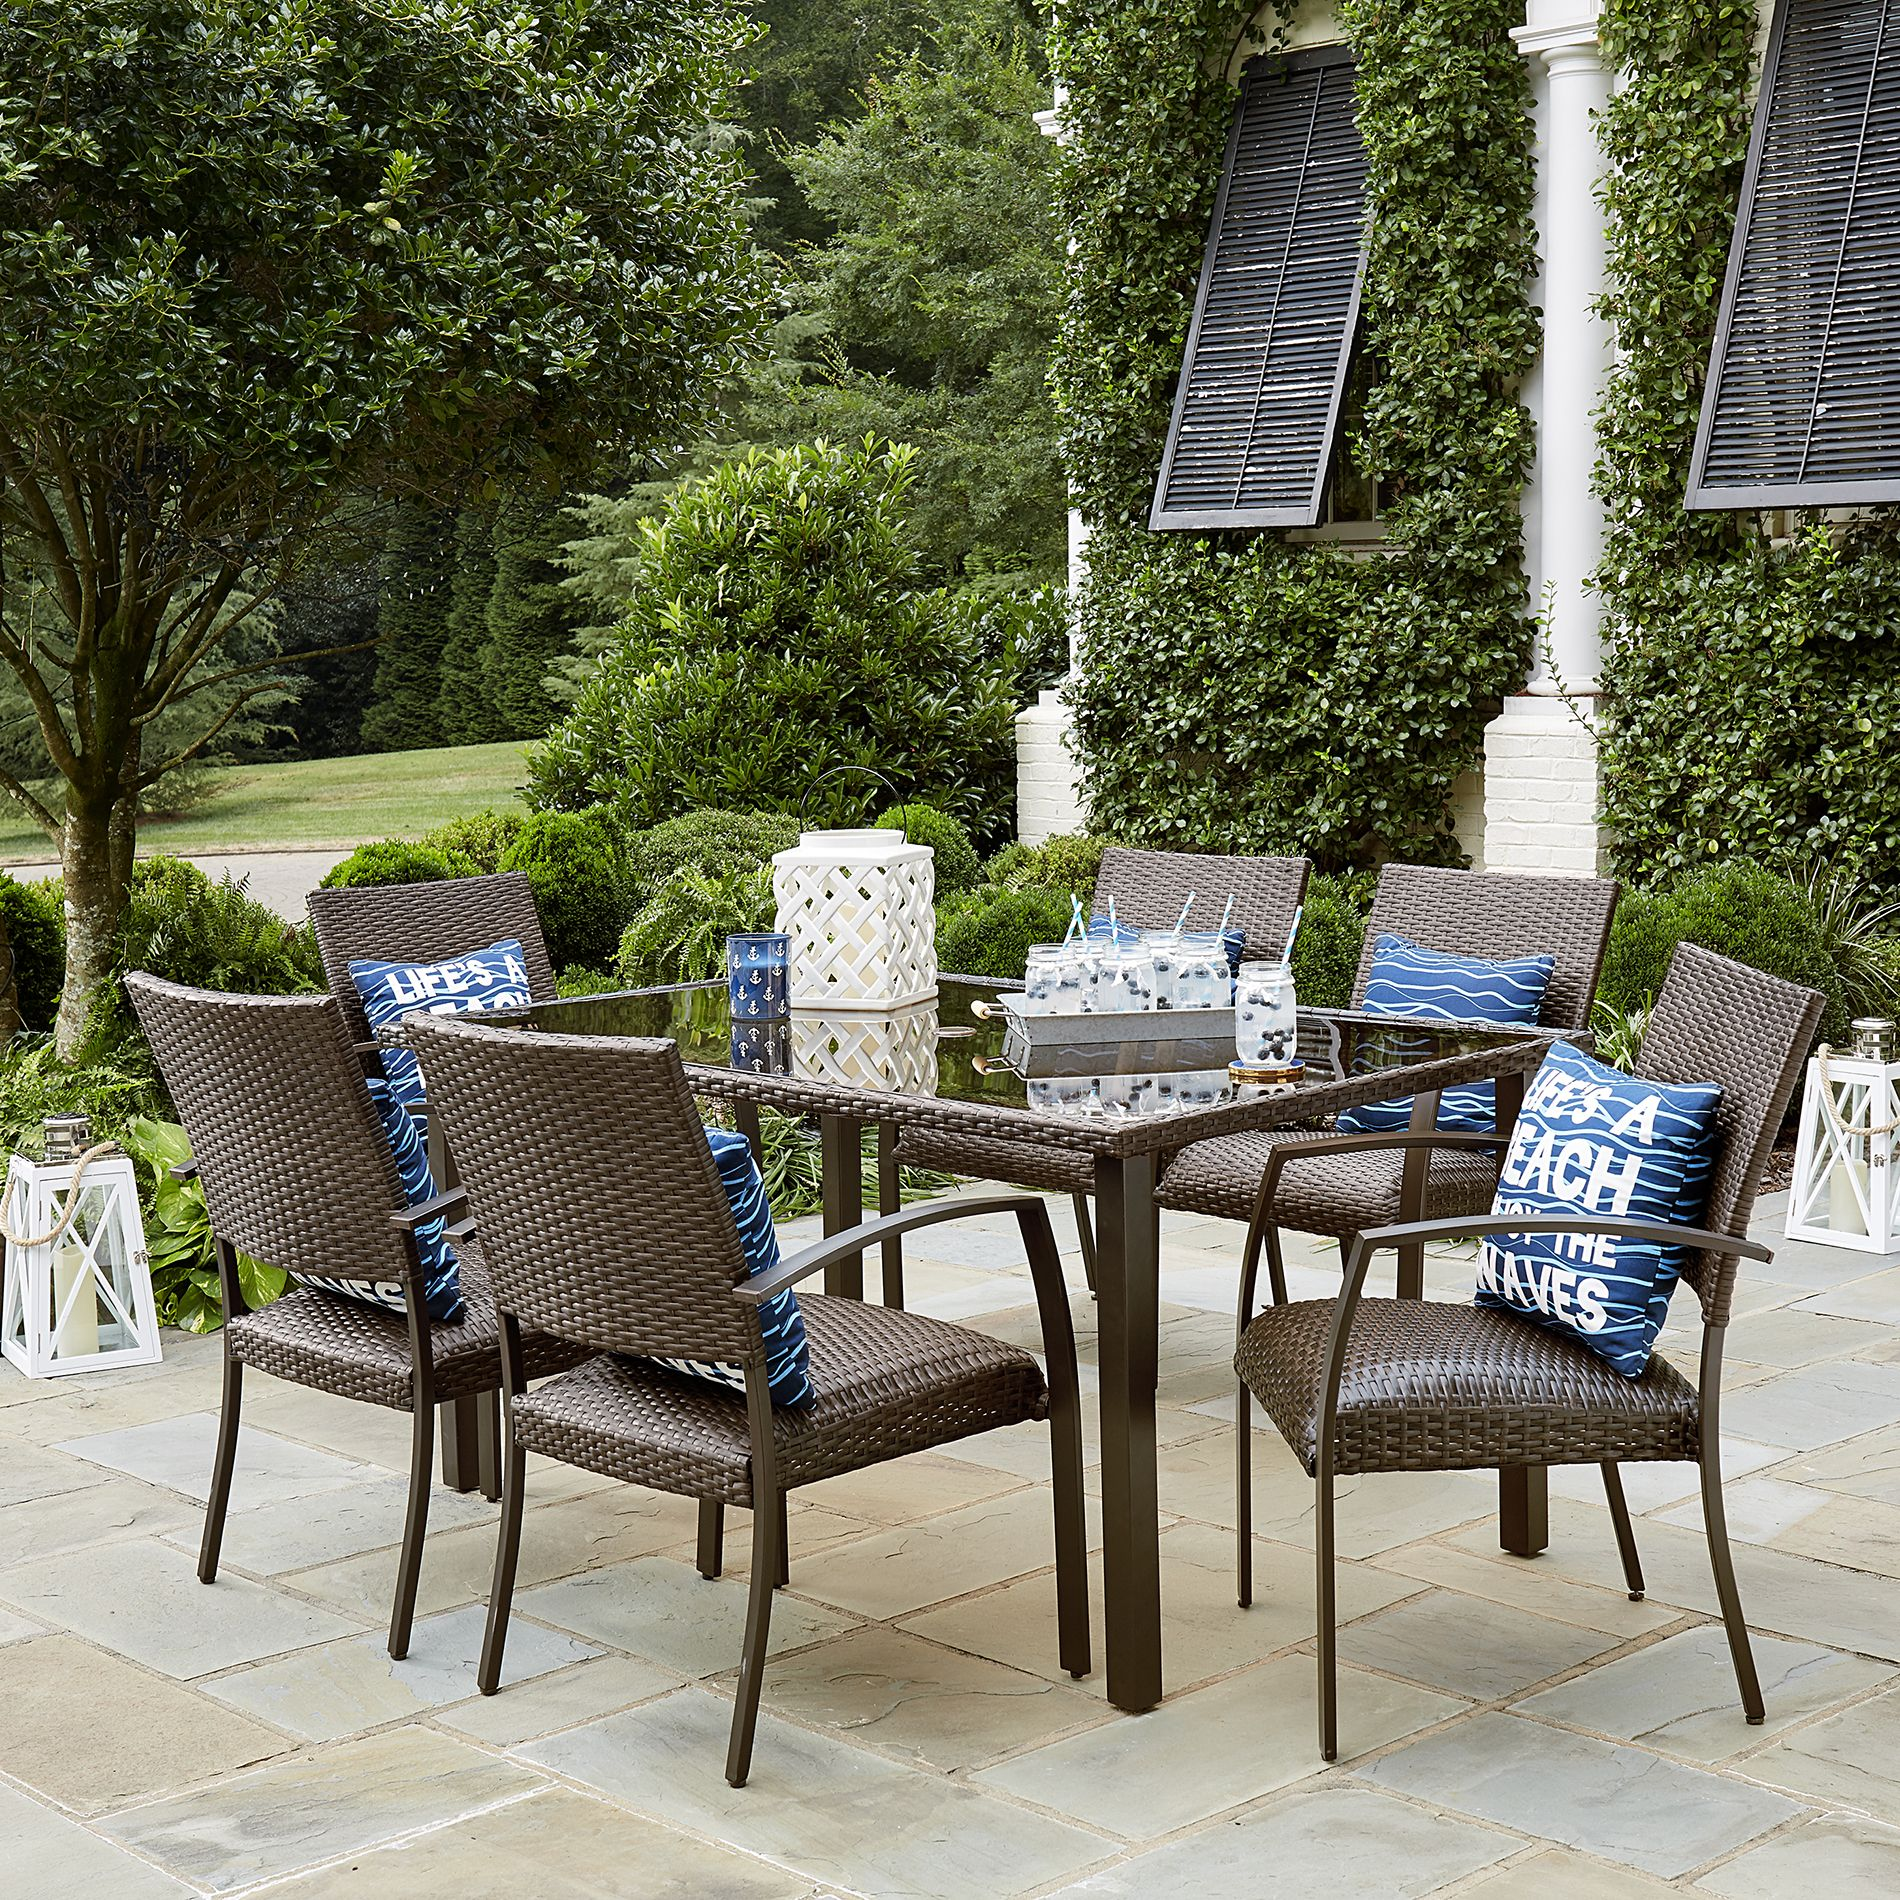 Sutton Rowe Williamsport 7 Piece Patio Dining Set  For A